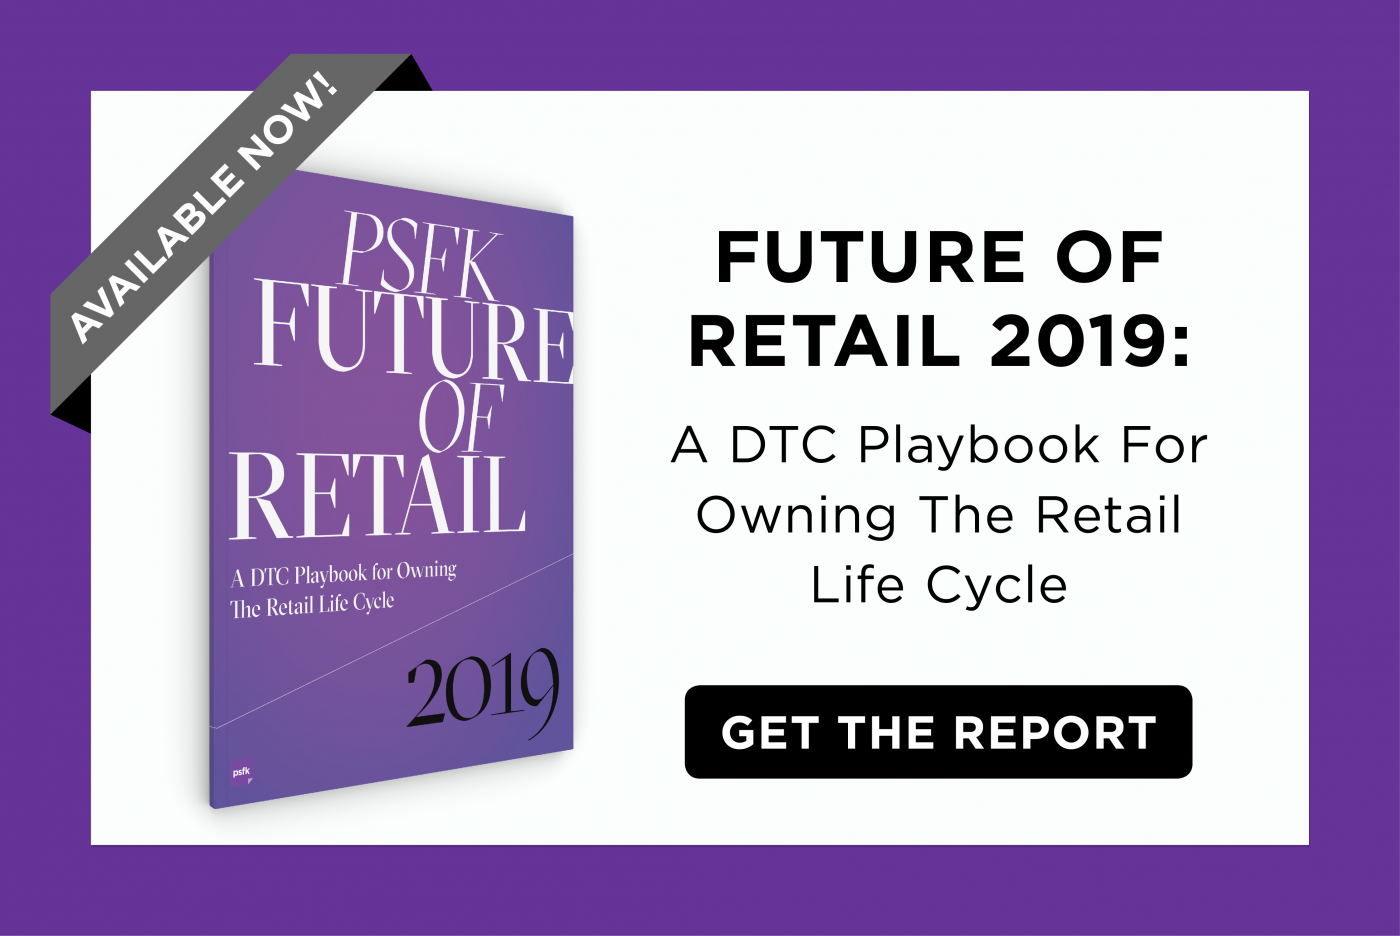 PSFK's Roadmap To DTC Success: The Future of Retail 2019 Report